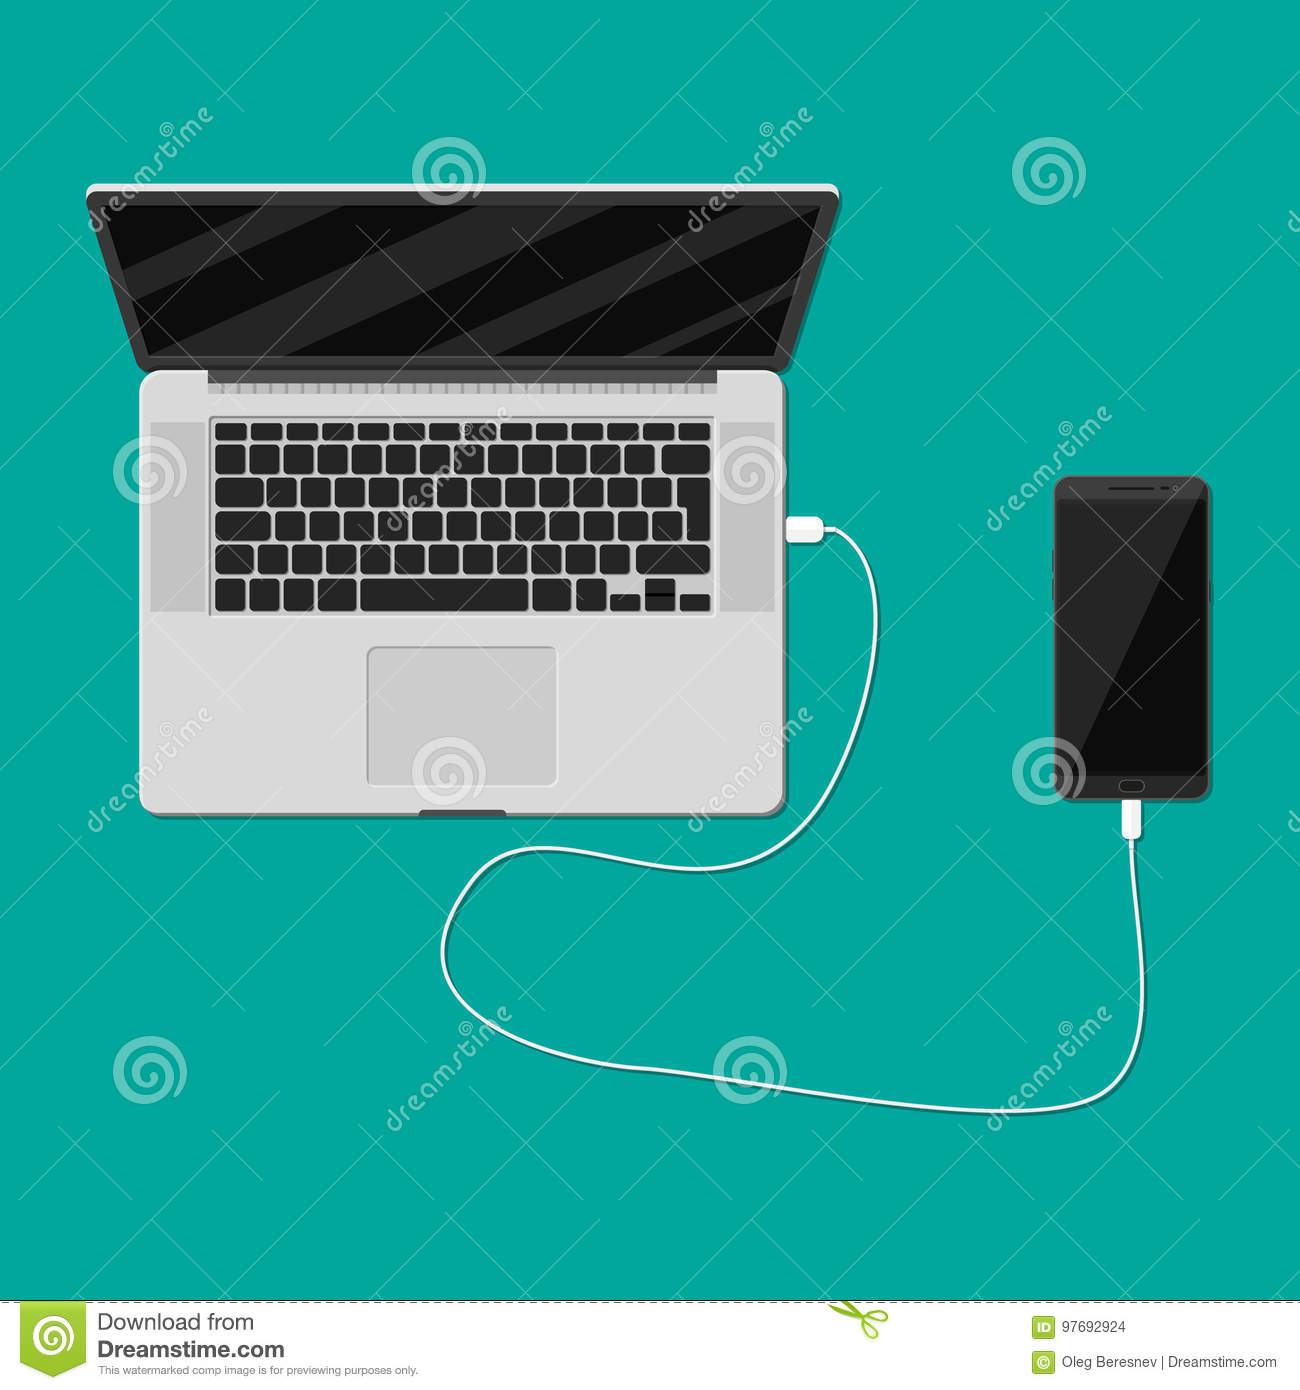 hight resolution of mobile phone charging from laptop usb port